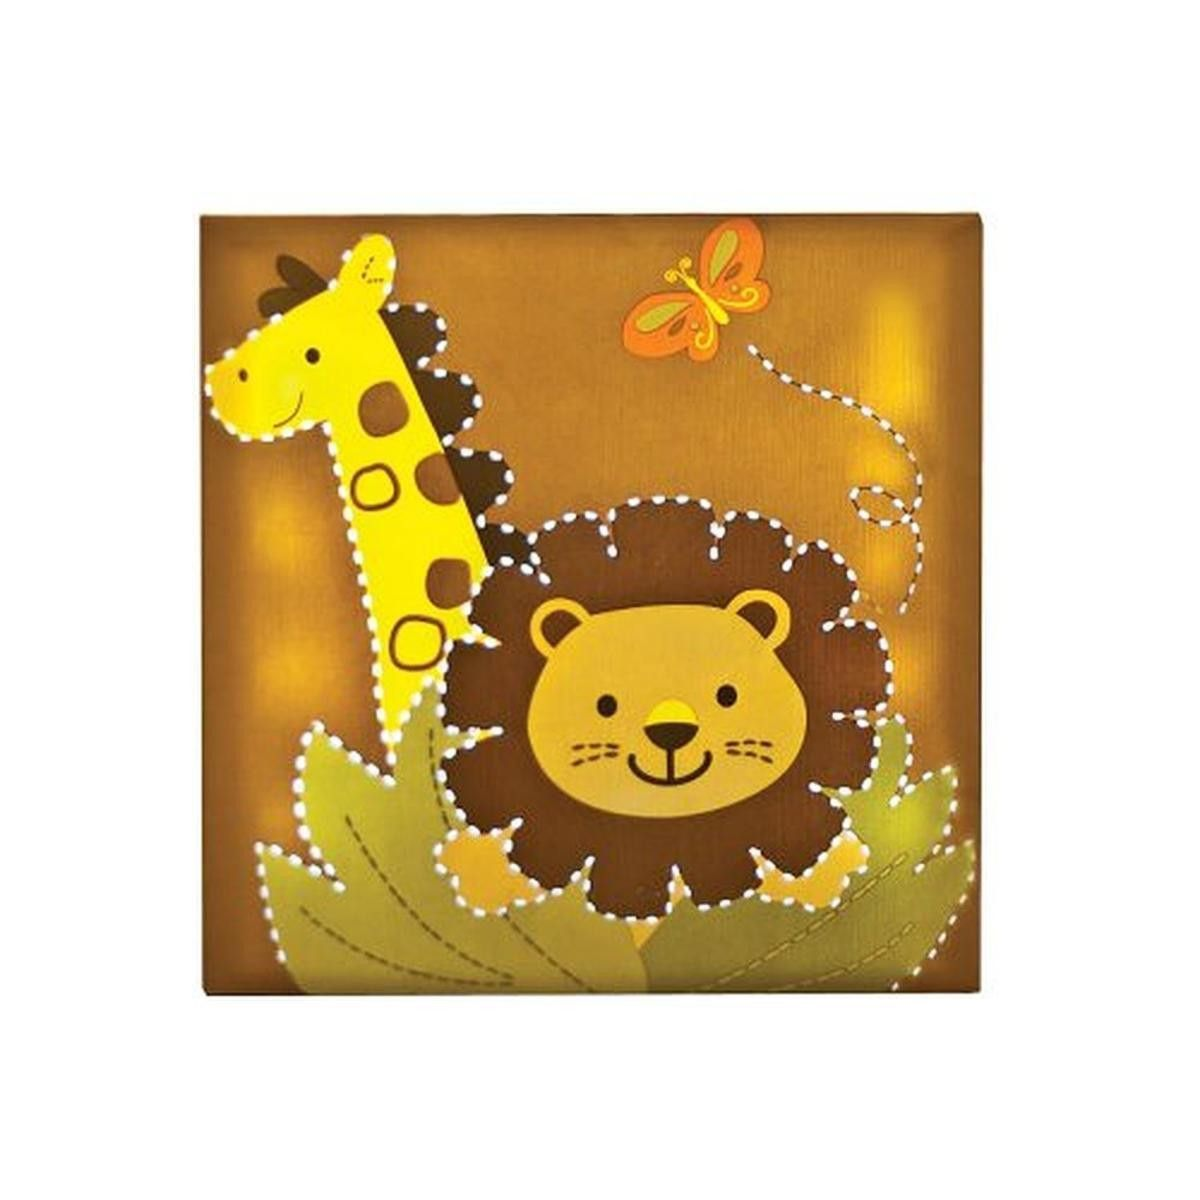 Safari Light Up Giraffe Lion Wall Decor | Wall decor, Giraffe and Lions